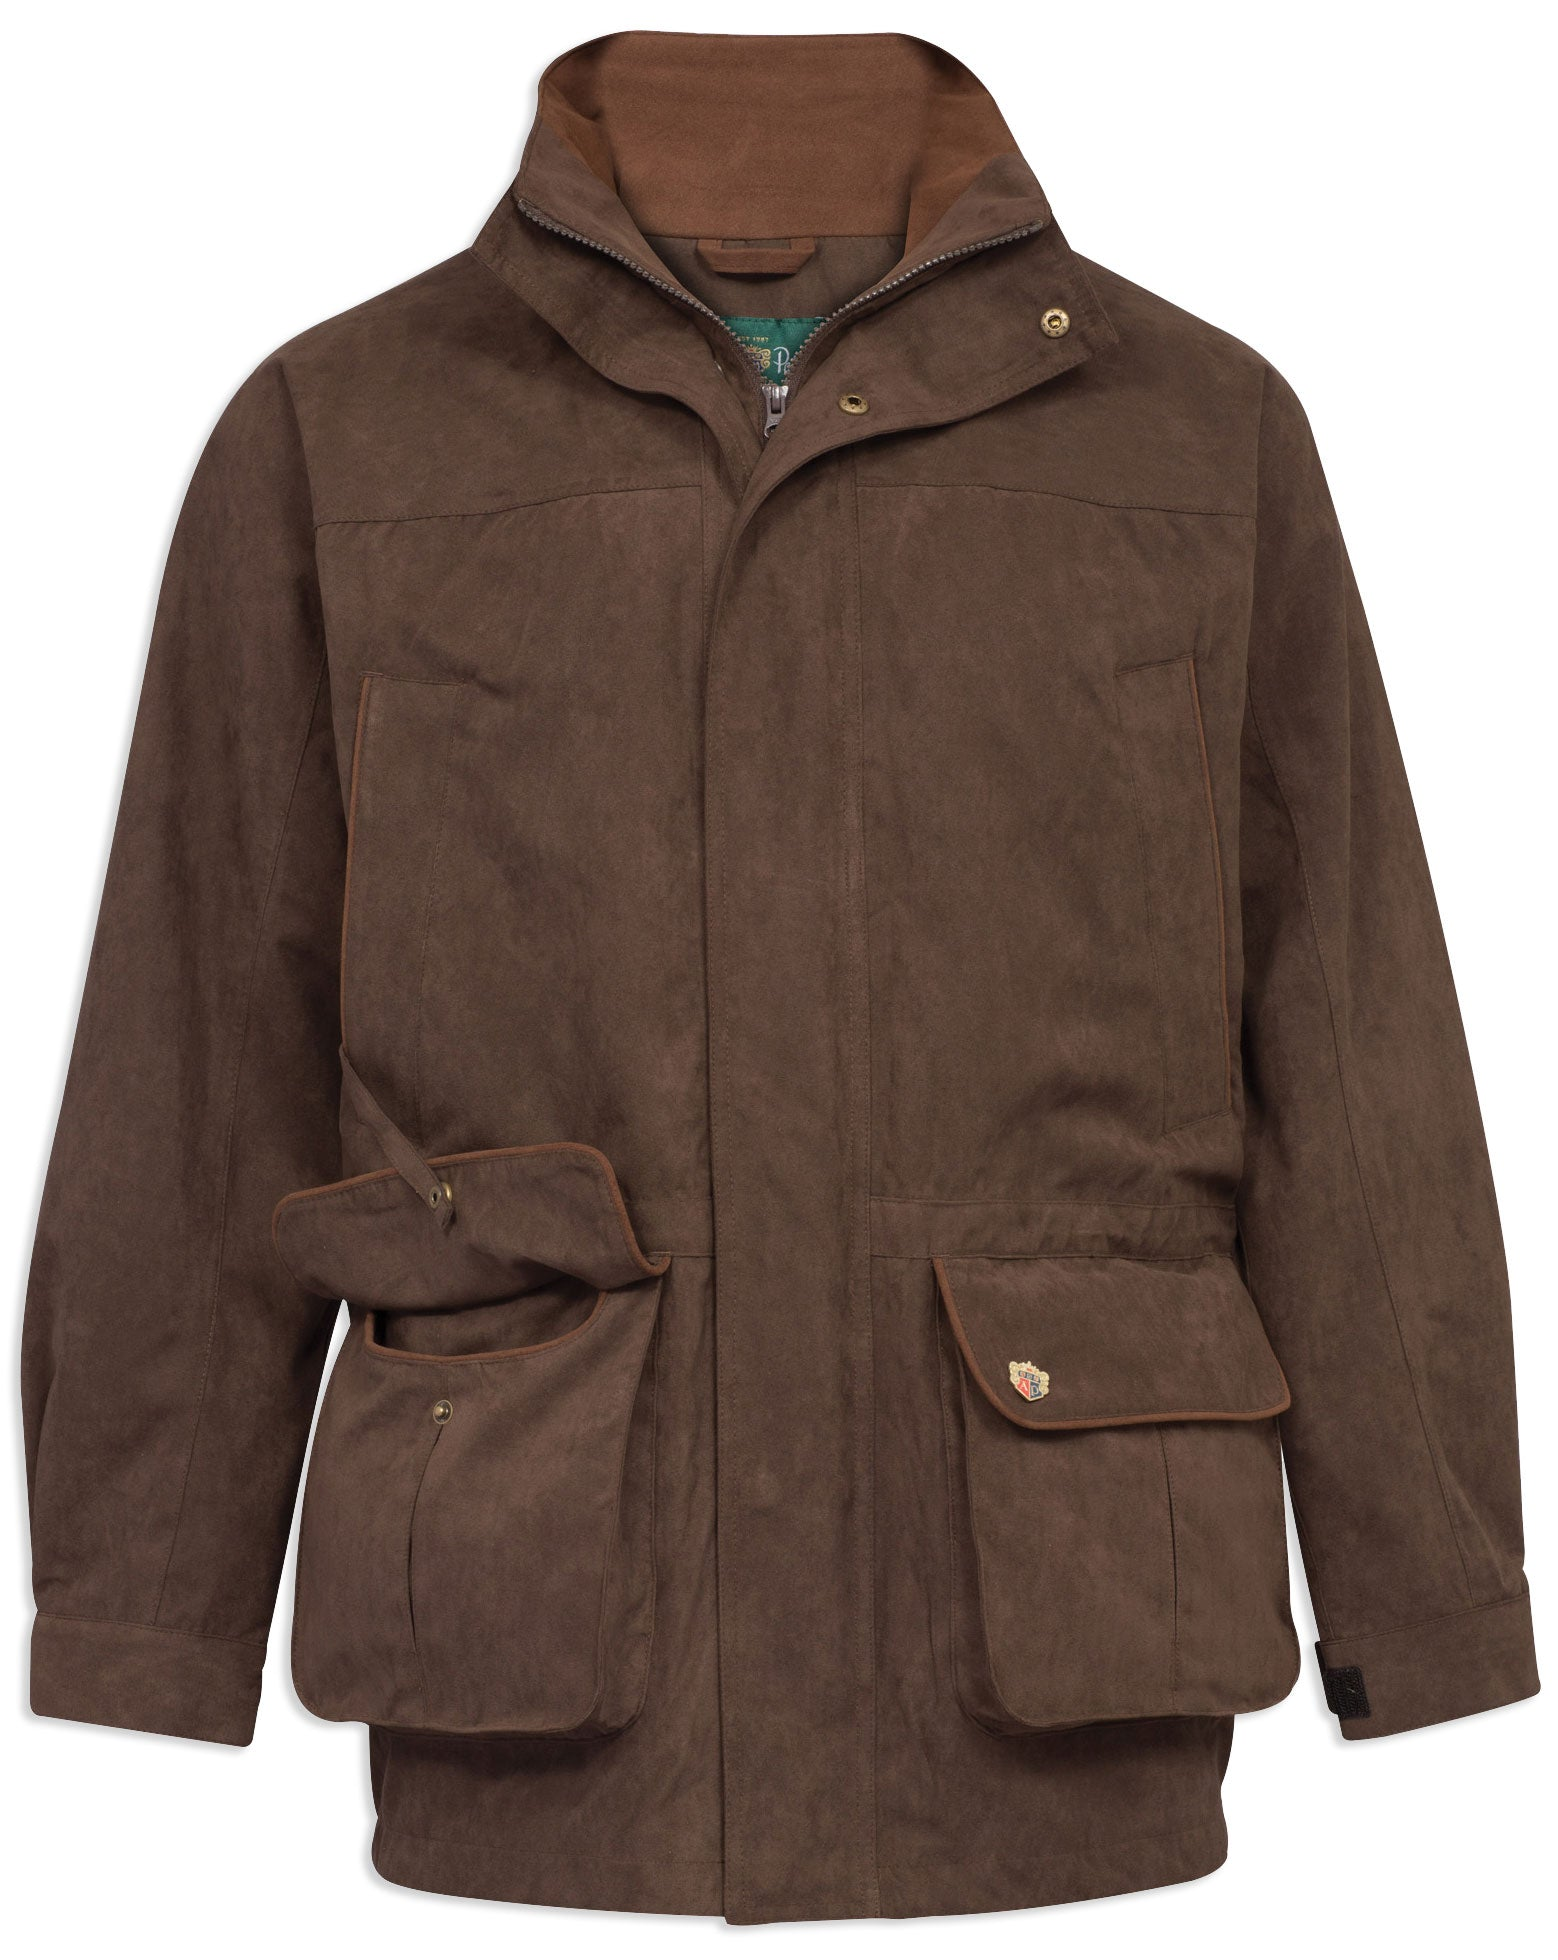 Cambridge Men's Waterproof Coat by Alan Paine